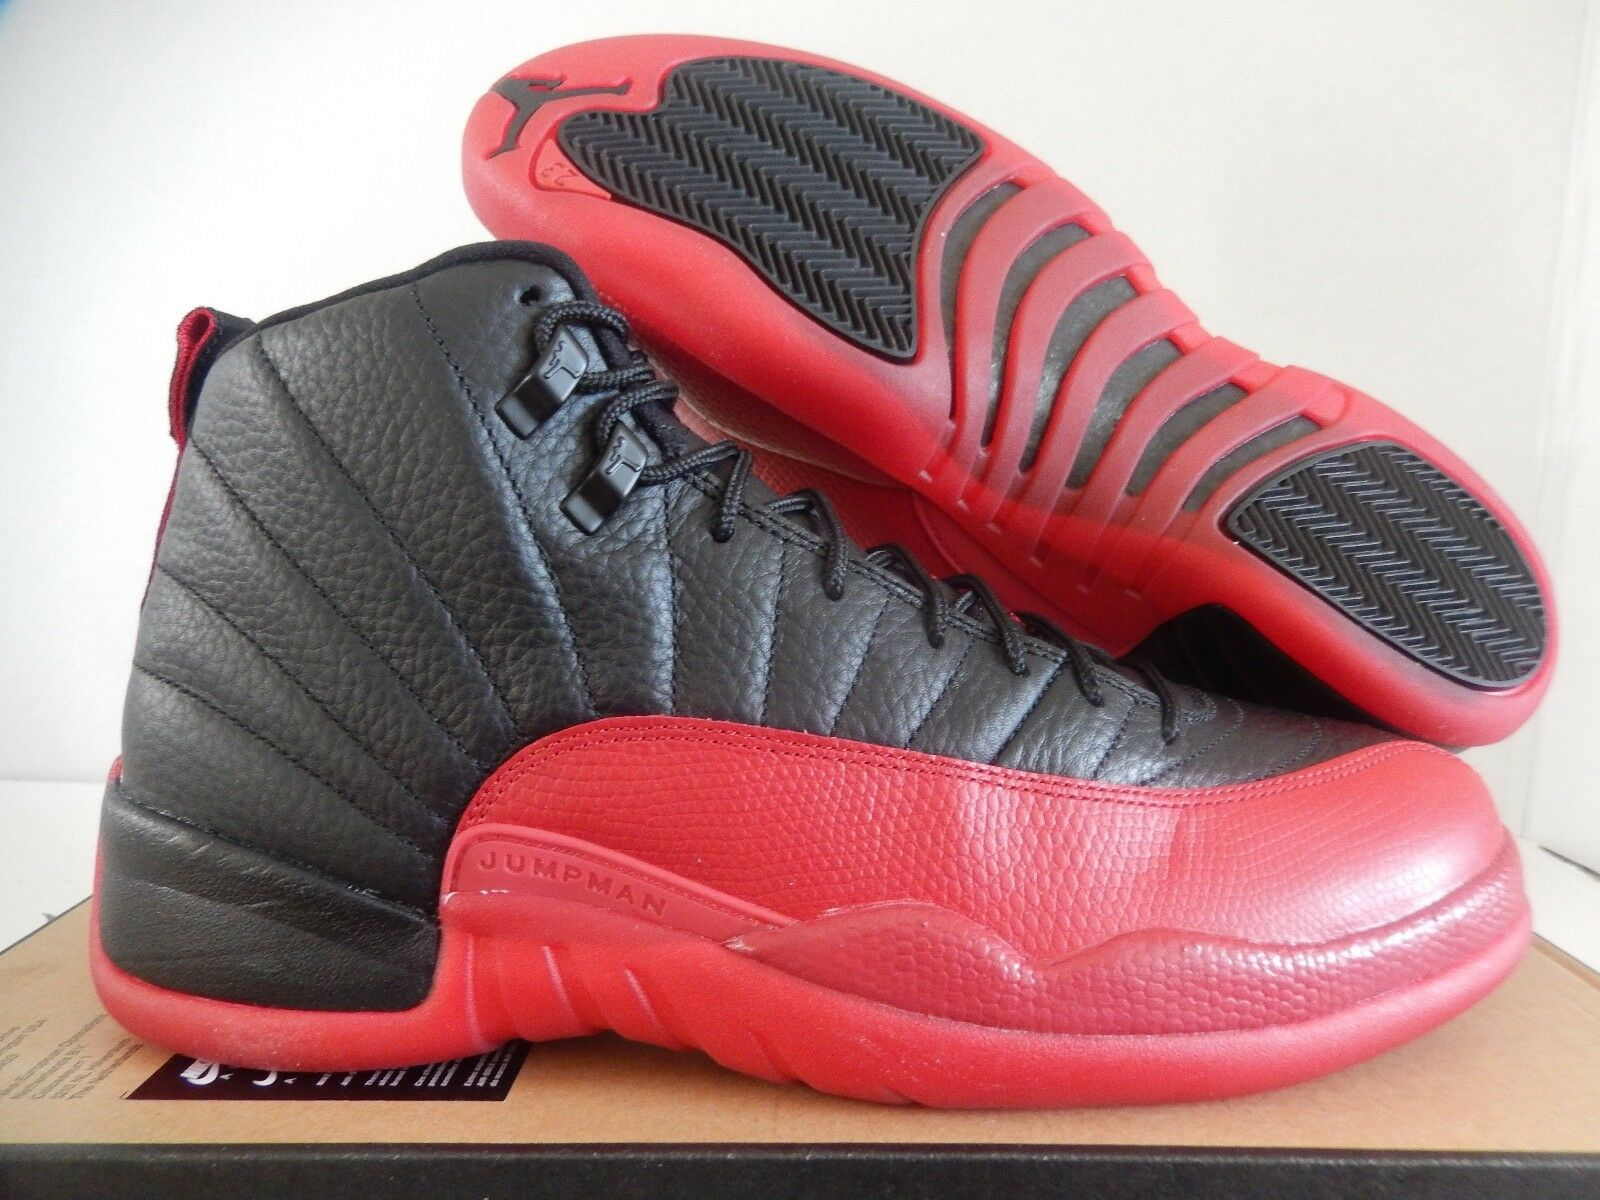 MEN'S NIKE AIR JORDAN 12 RETRO